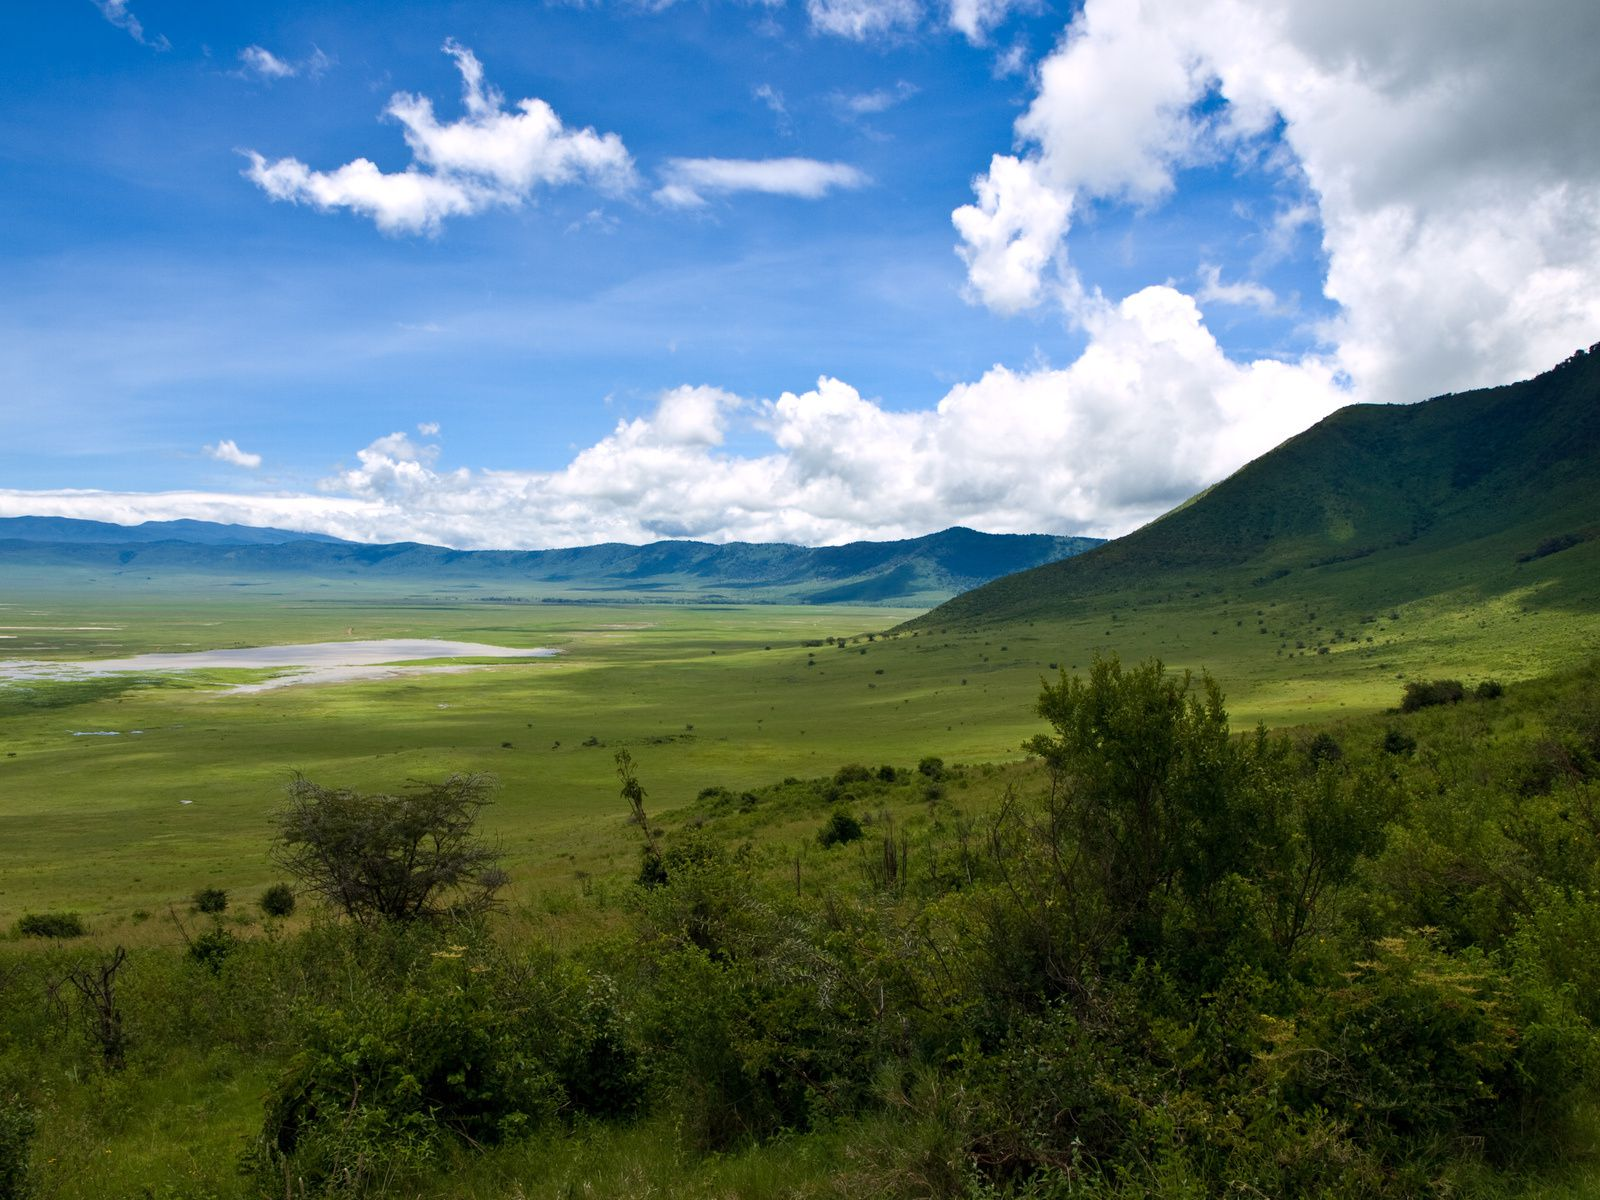 aire de conservation du Ngorongoro - le cratère du Ngorongoro - photo  William Warby / London, England